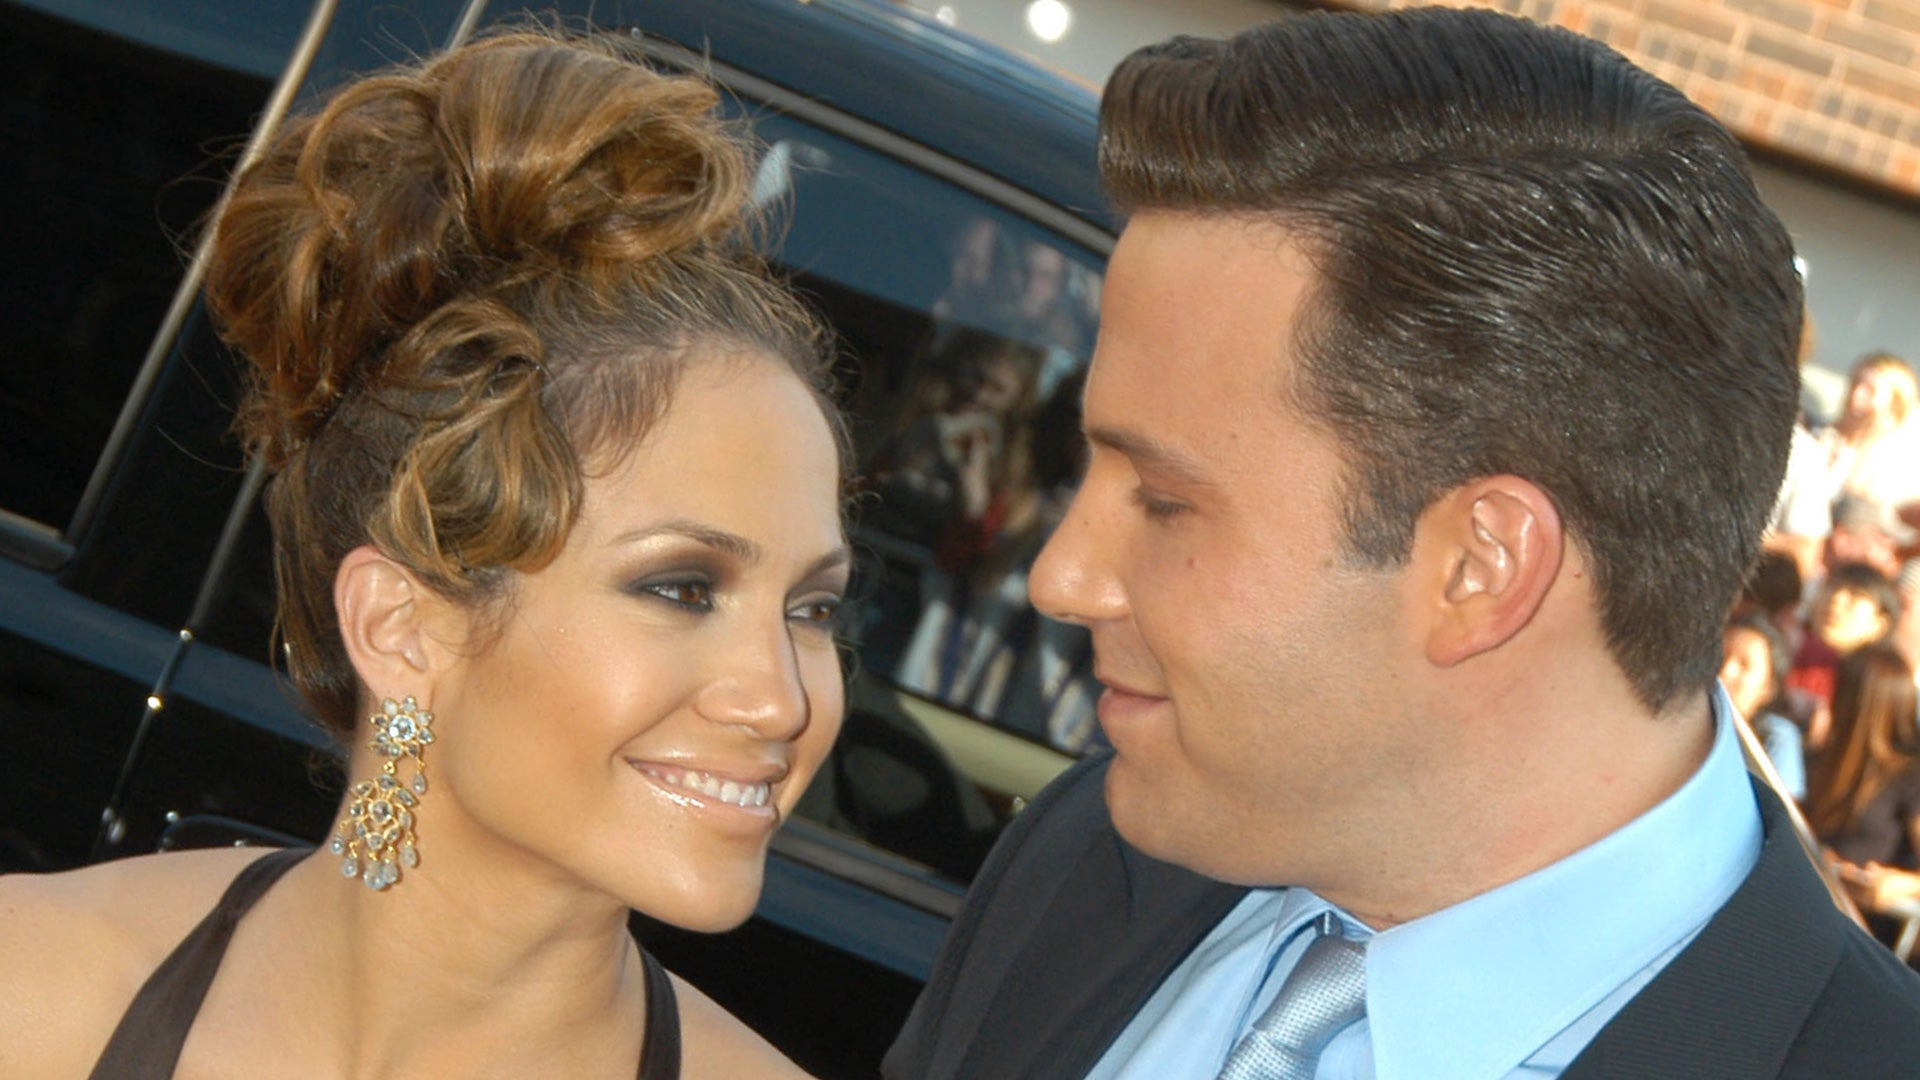 Ben Affleck and Jennifer Lopez Ready to Become One Blended Family (Source)